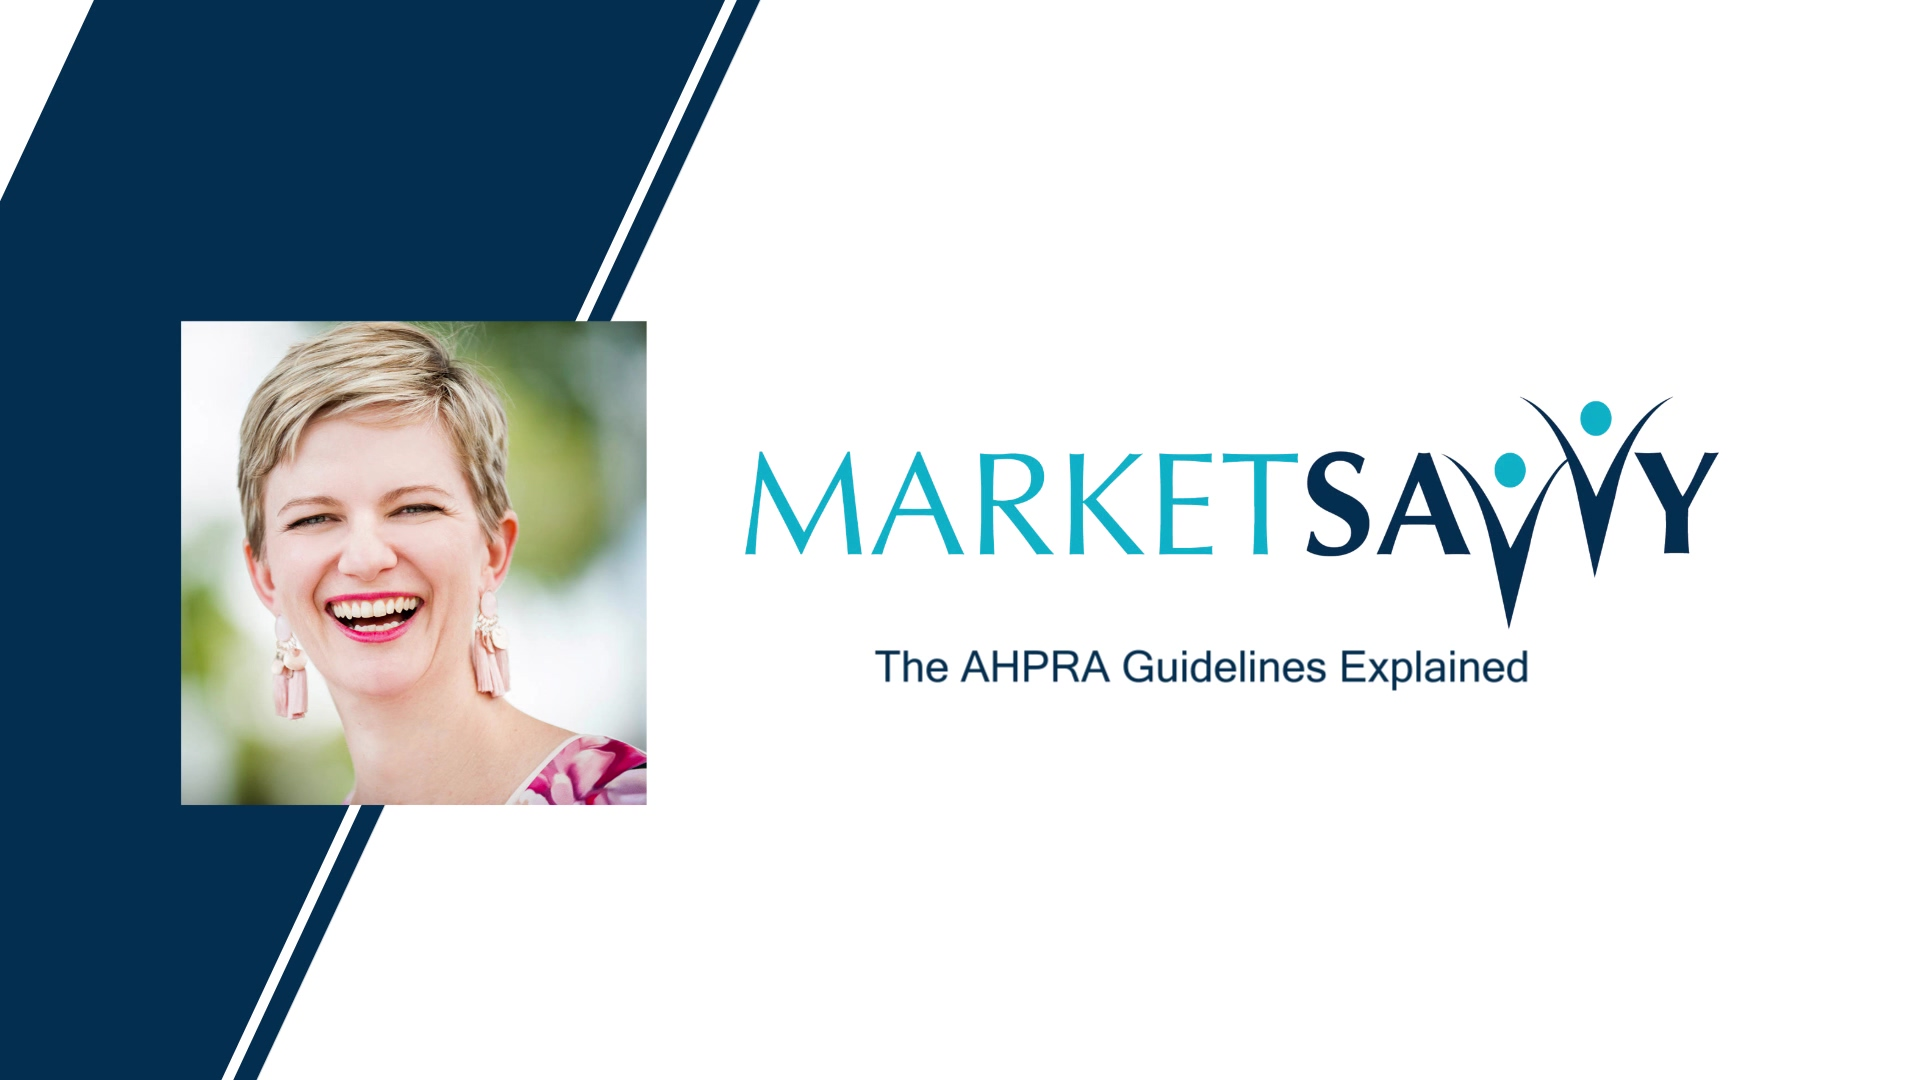 Market Savvy - The AHPRA Guidelines